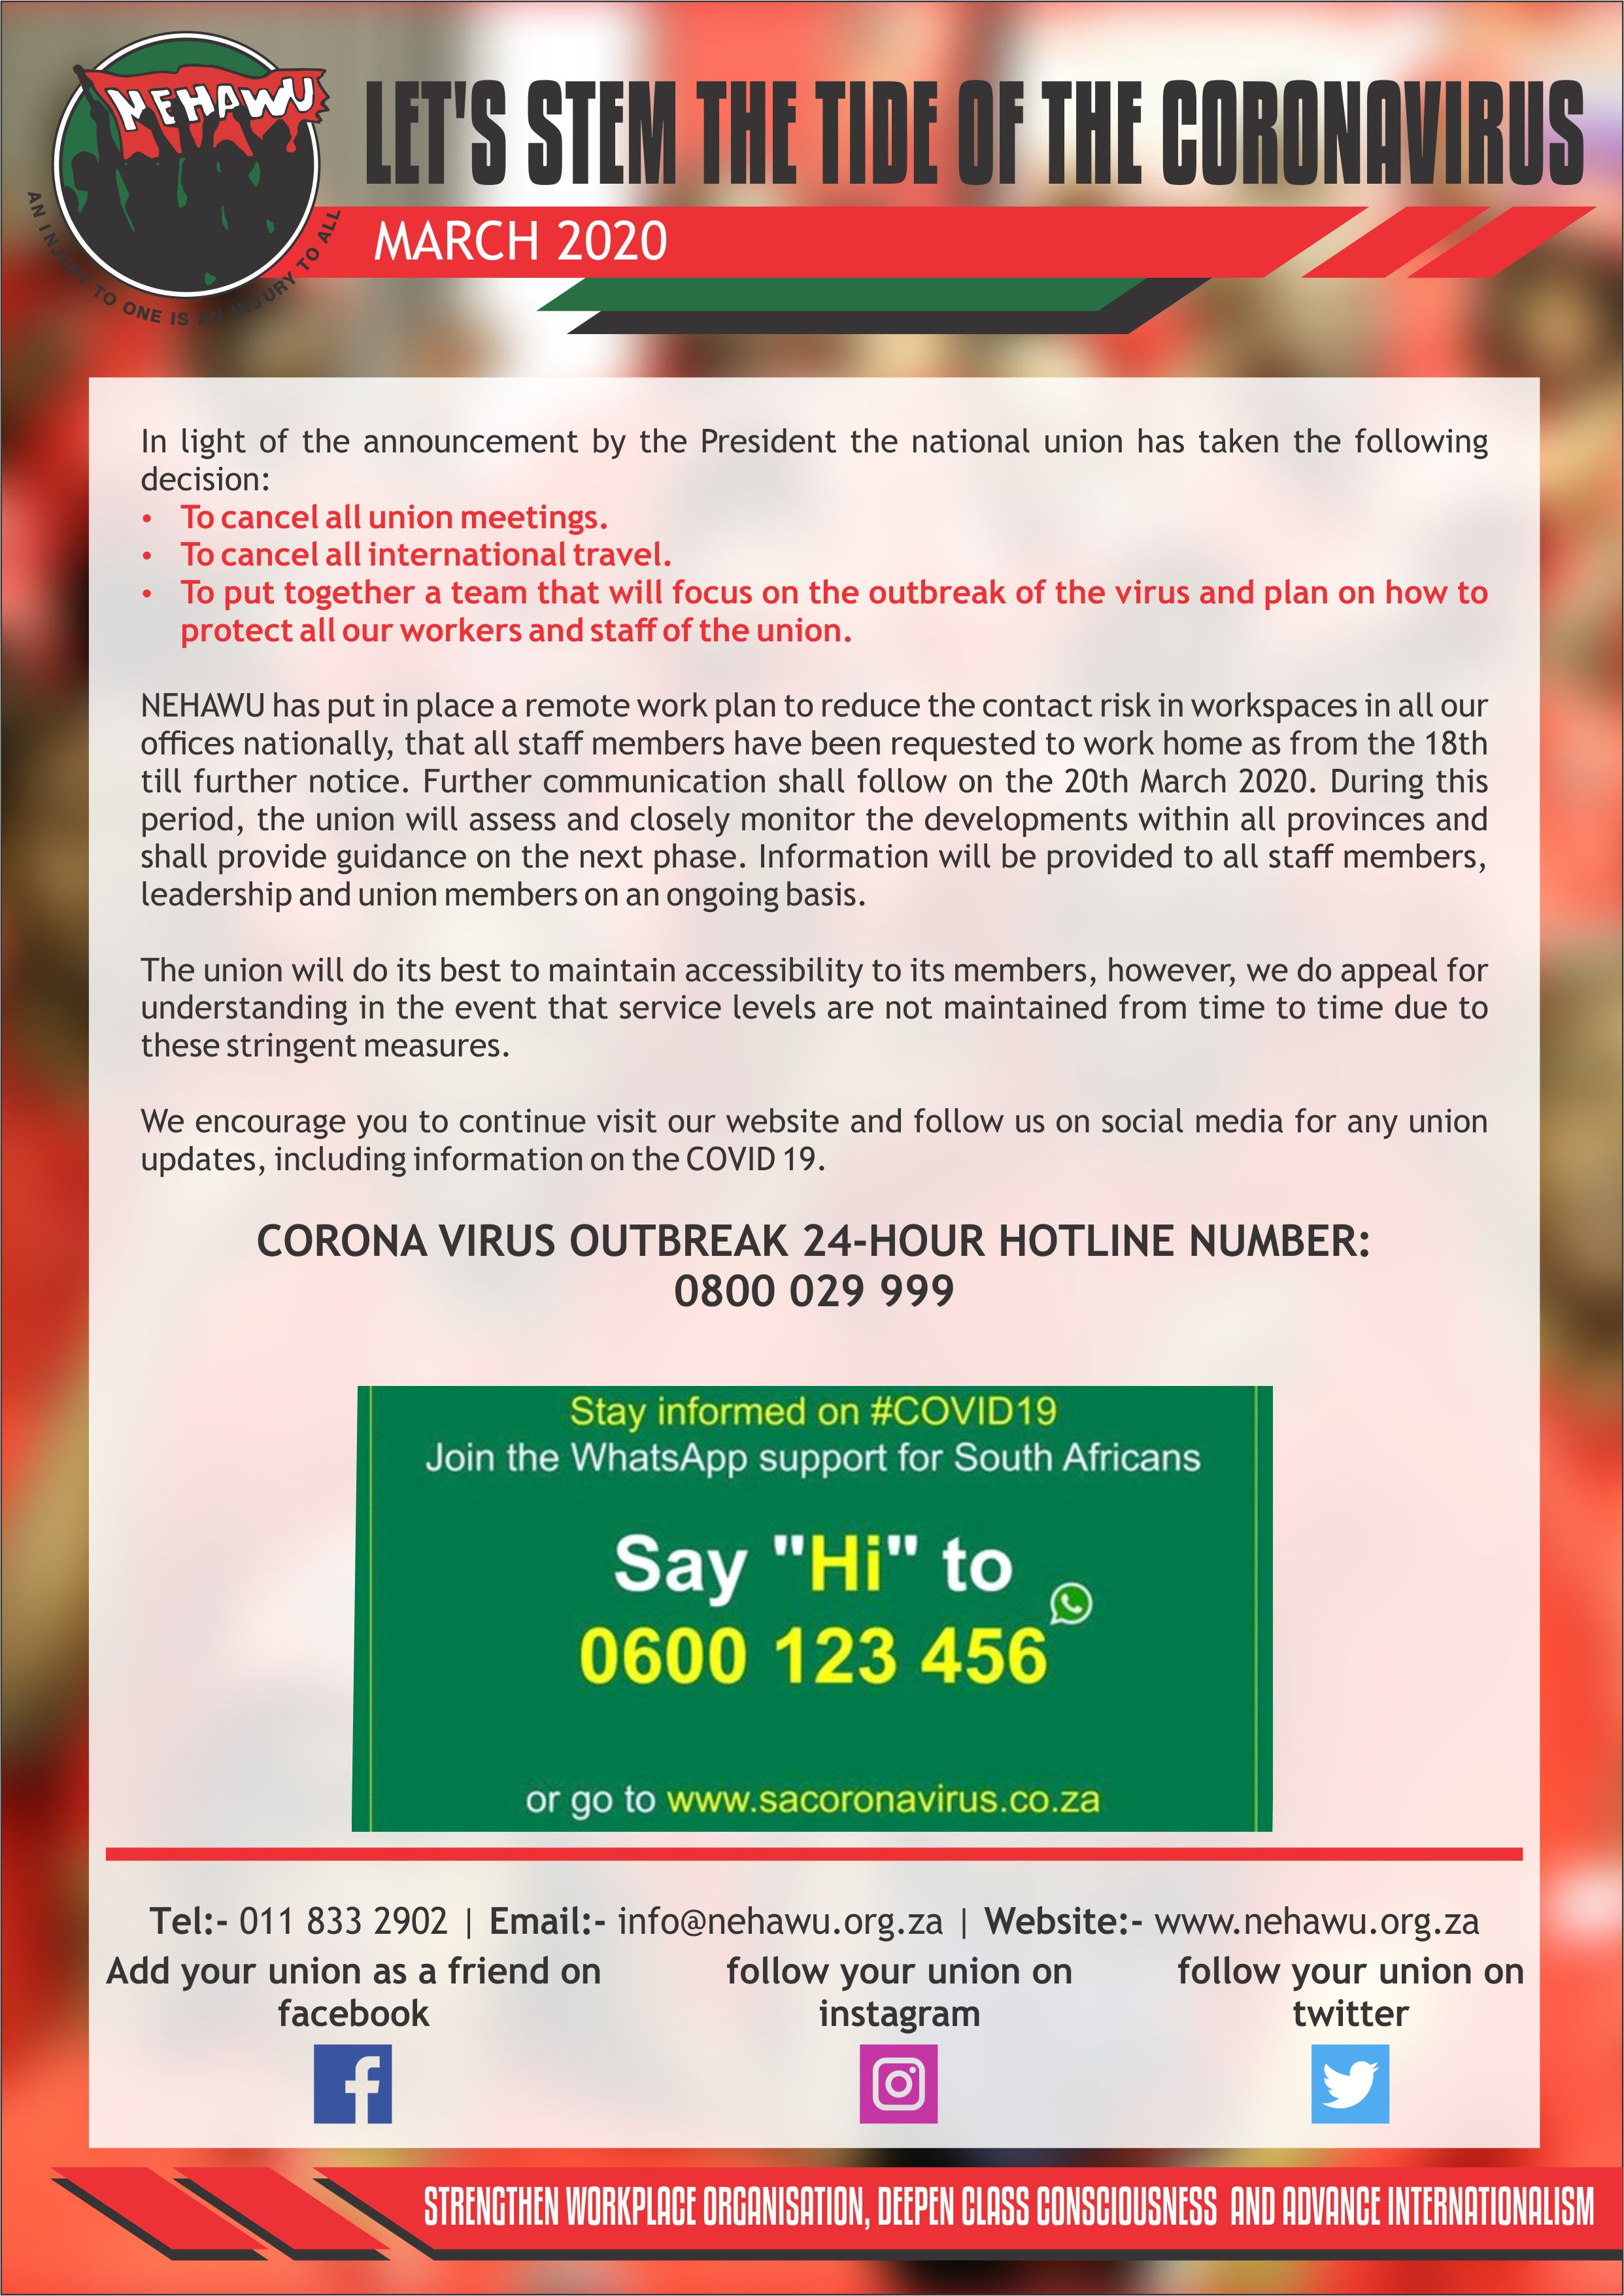 NEHAWU Corona Virus Awareness Campaign